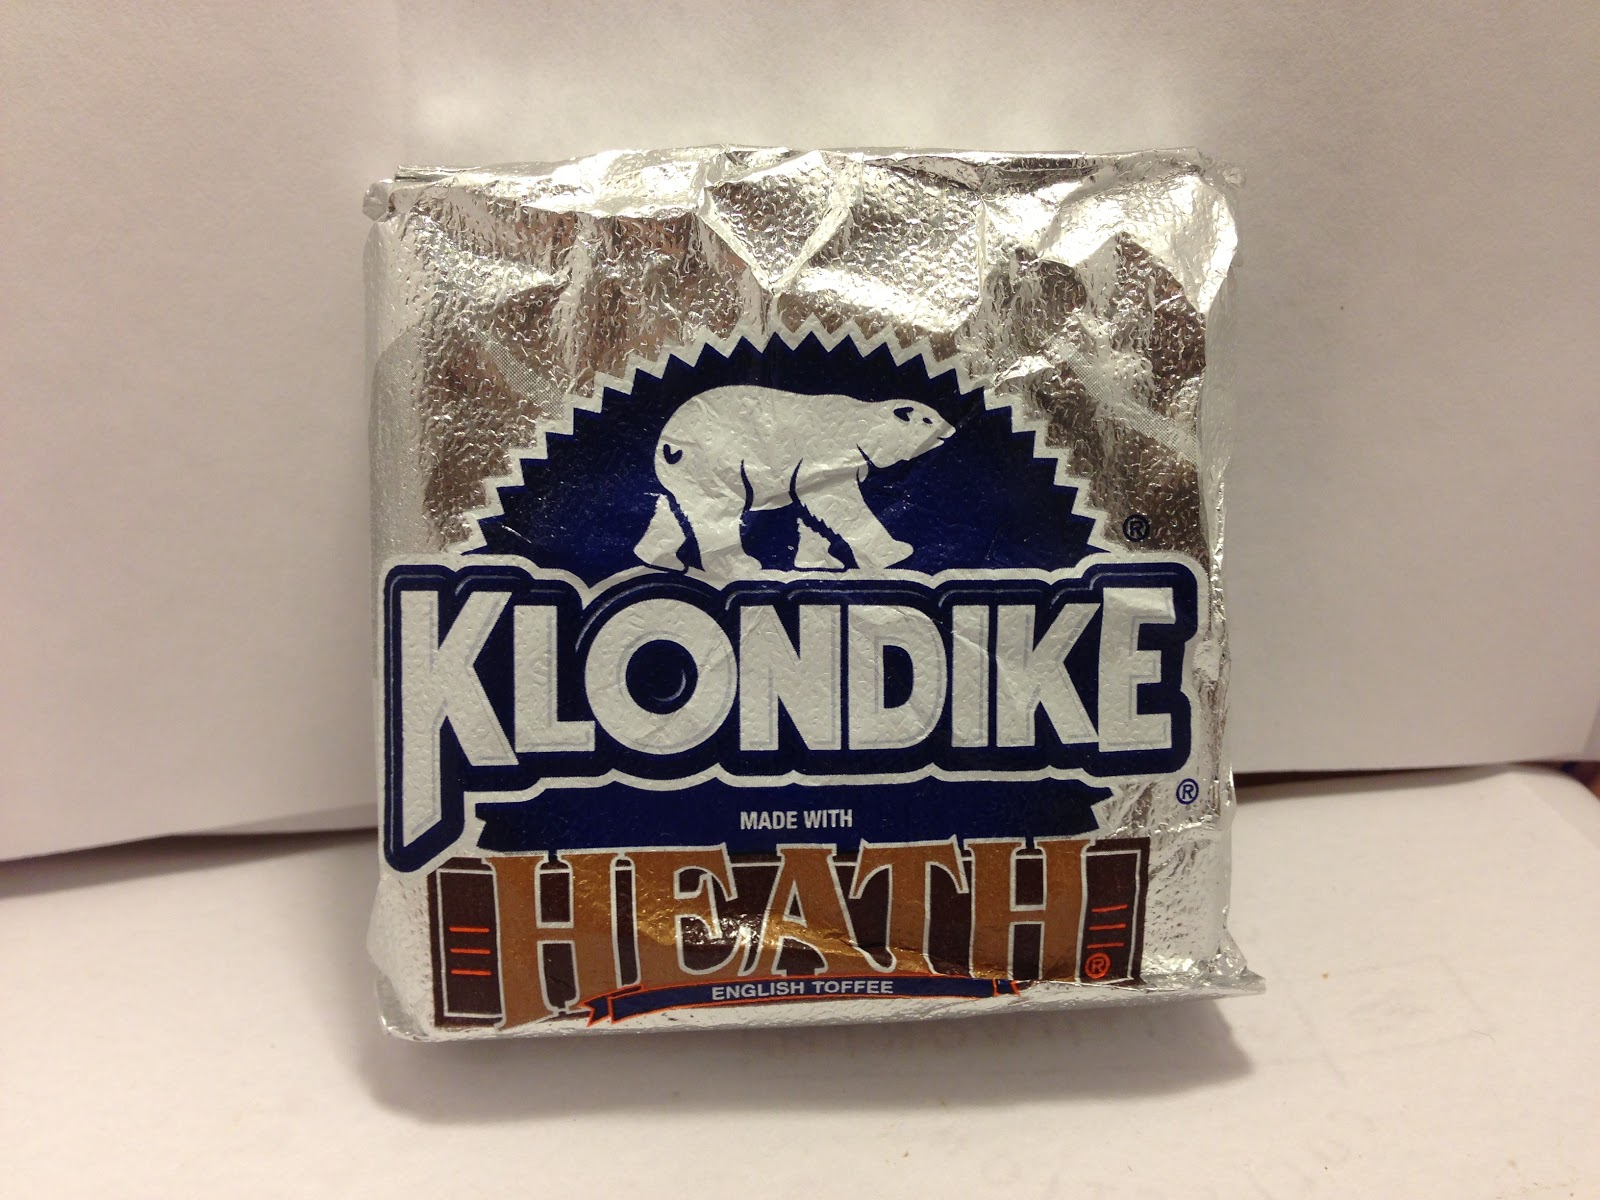 Review: Klondike Heath...